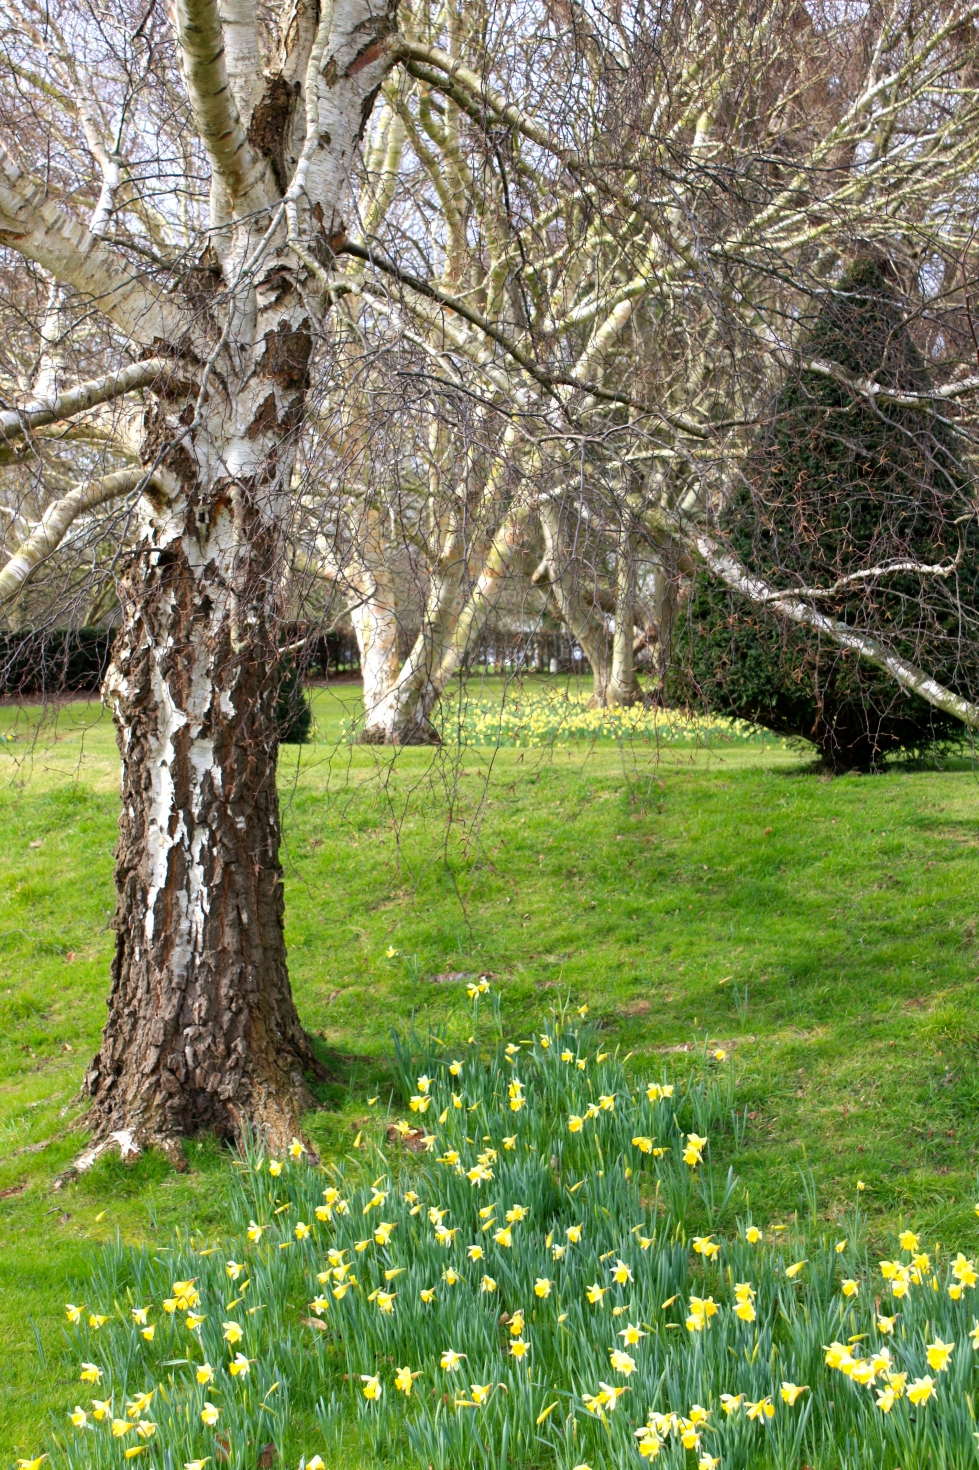 birches and narcissi, Goodnestone Park, February 2016